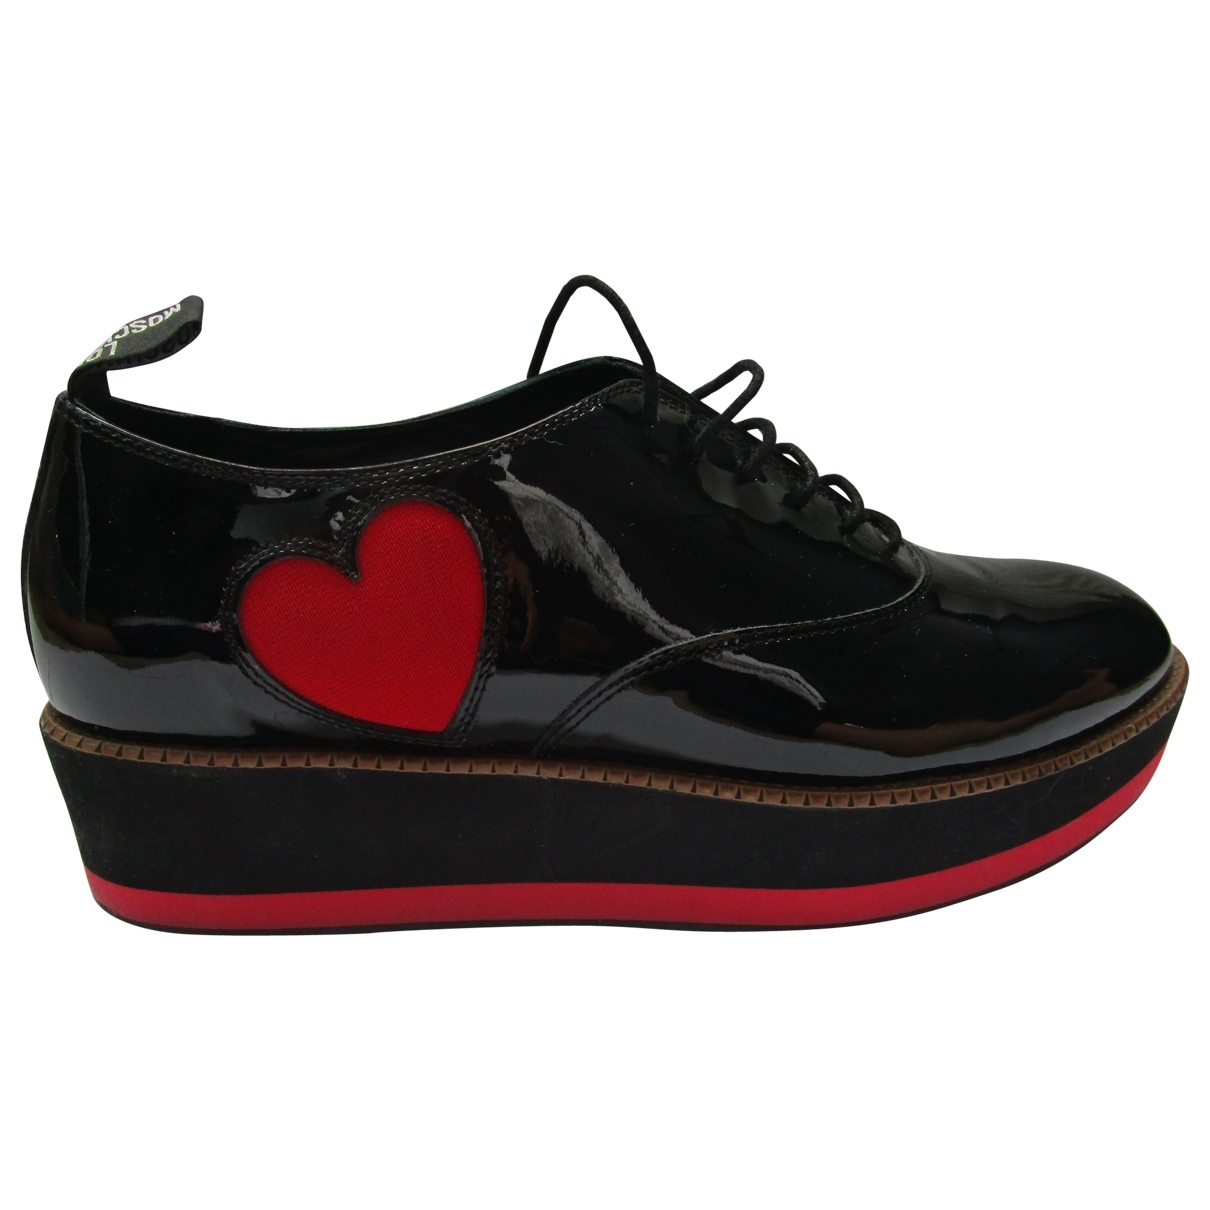 Moschino Love \N Black Patent leather Flats for Women 39 EU